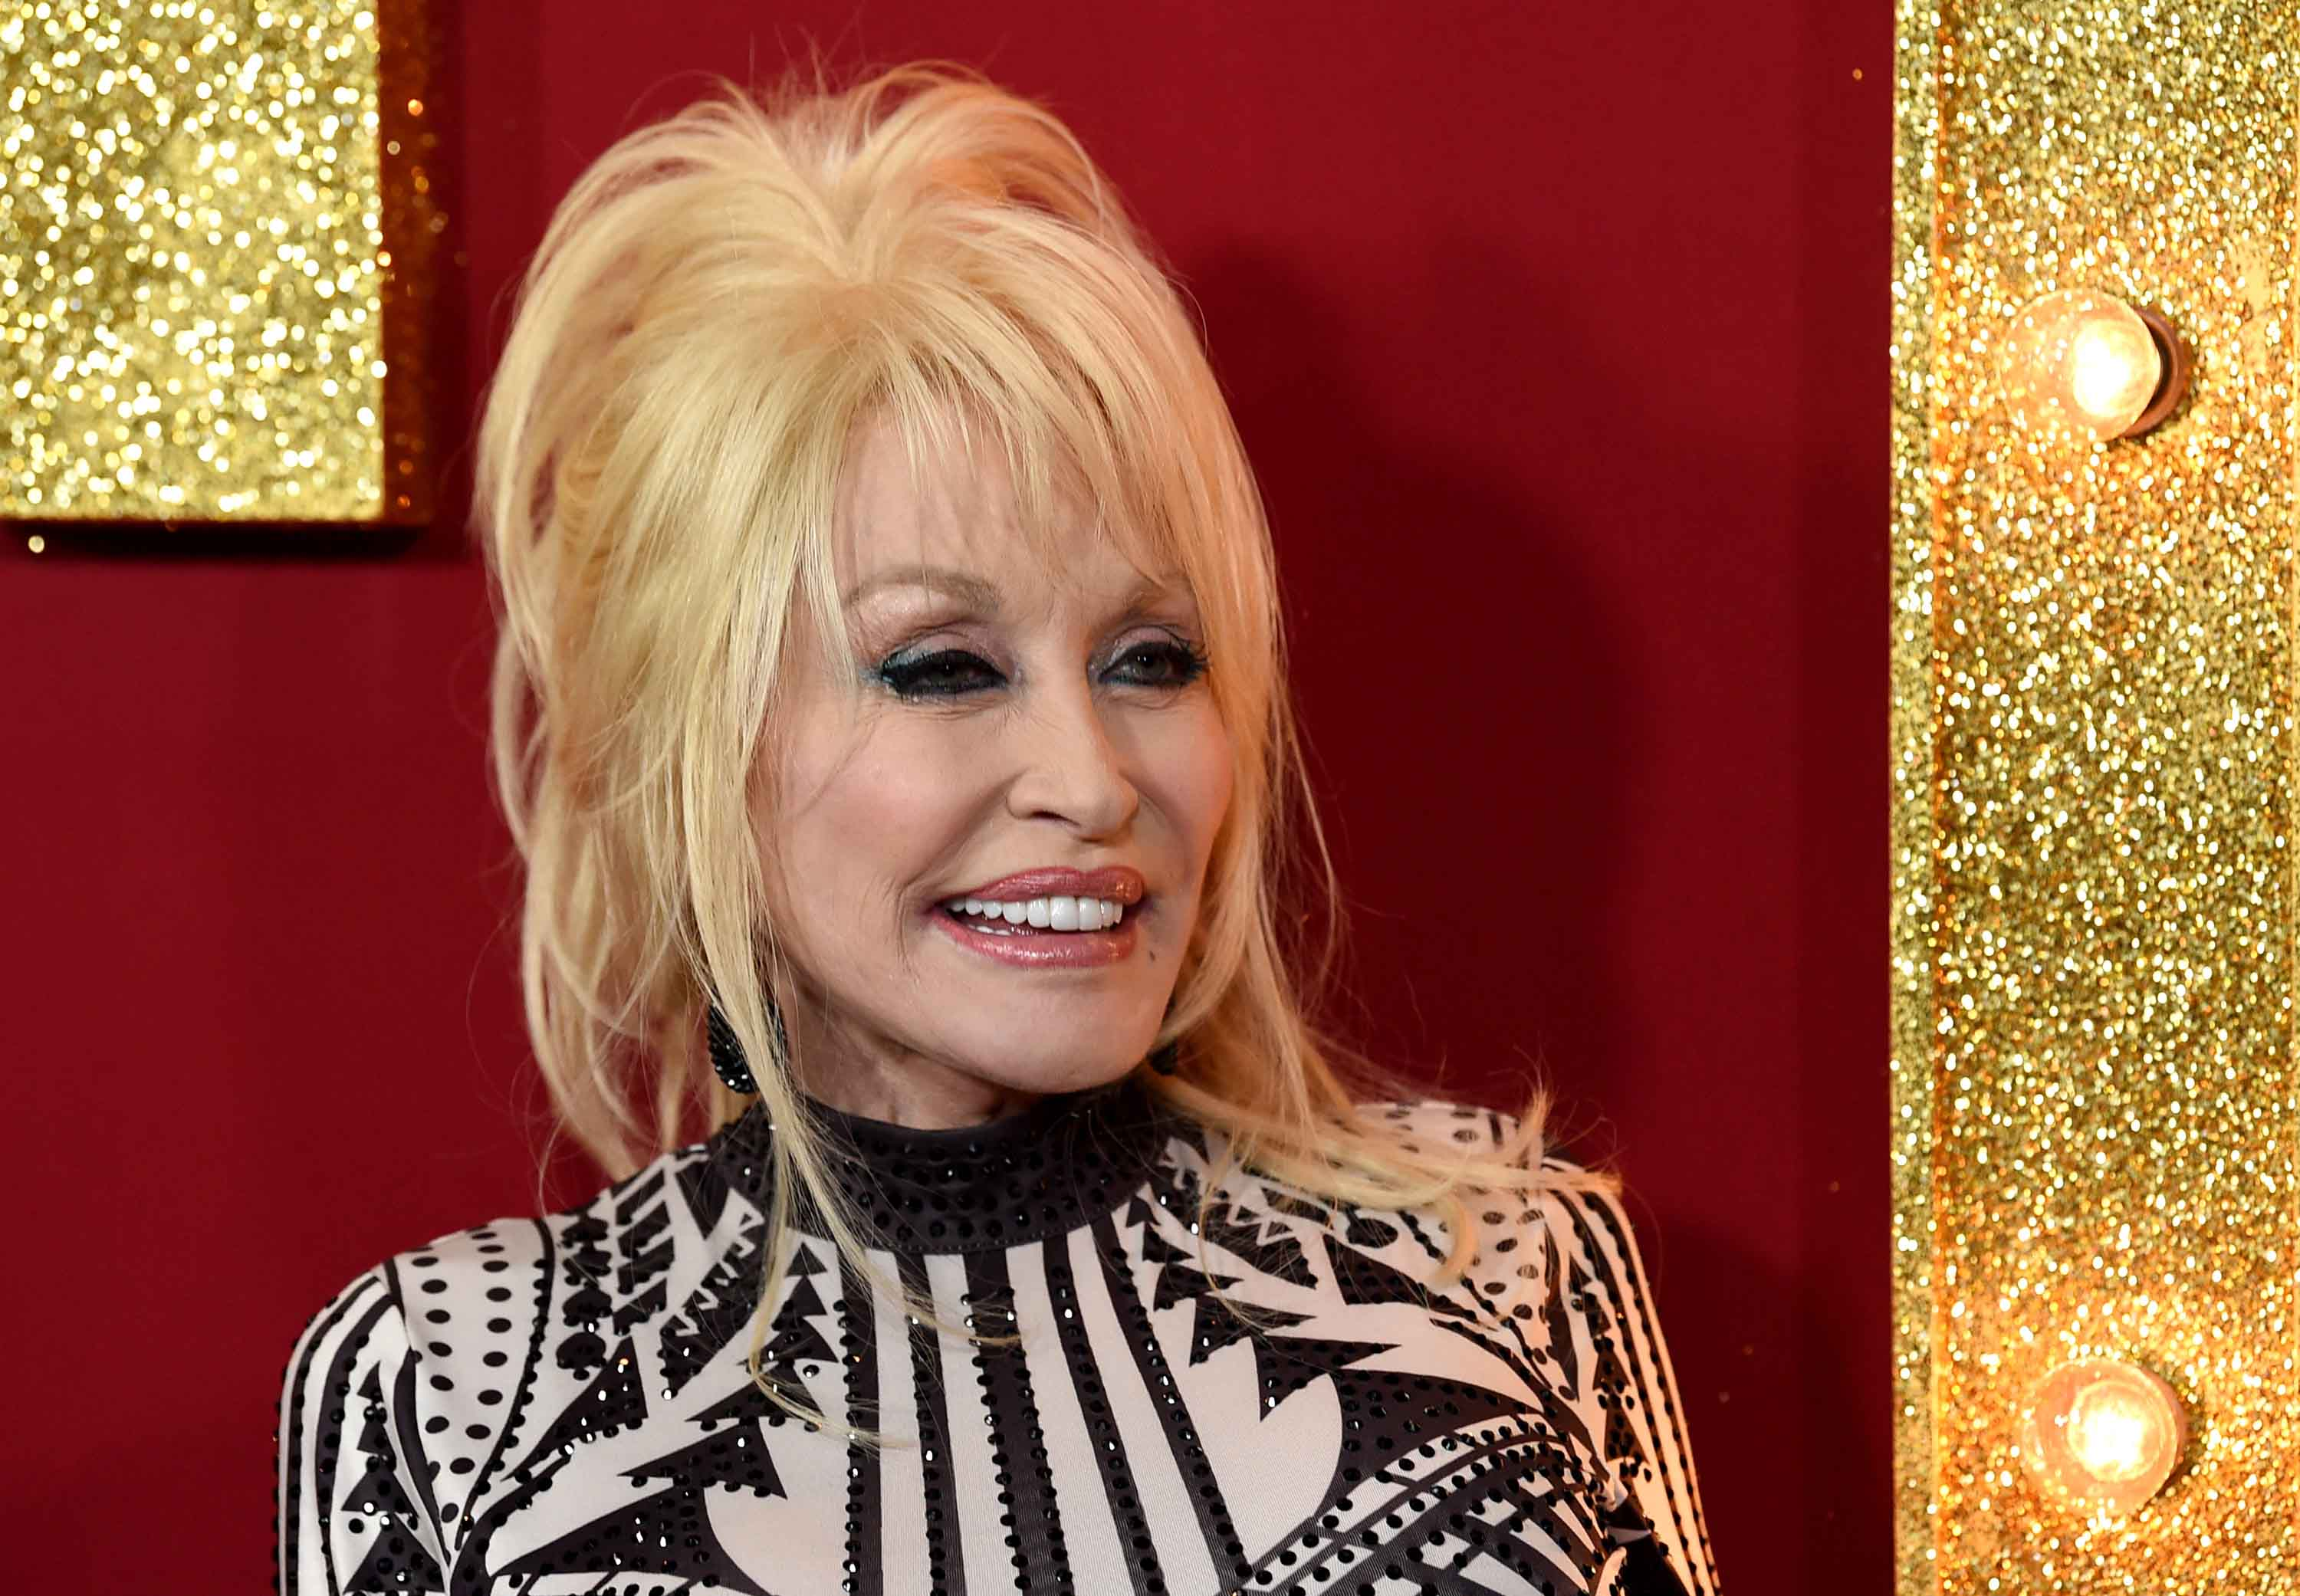 Dolly Parton turns 75